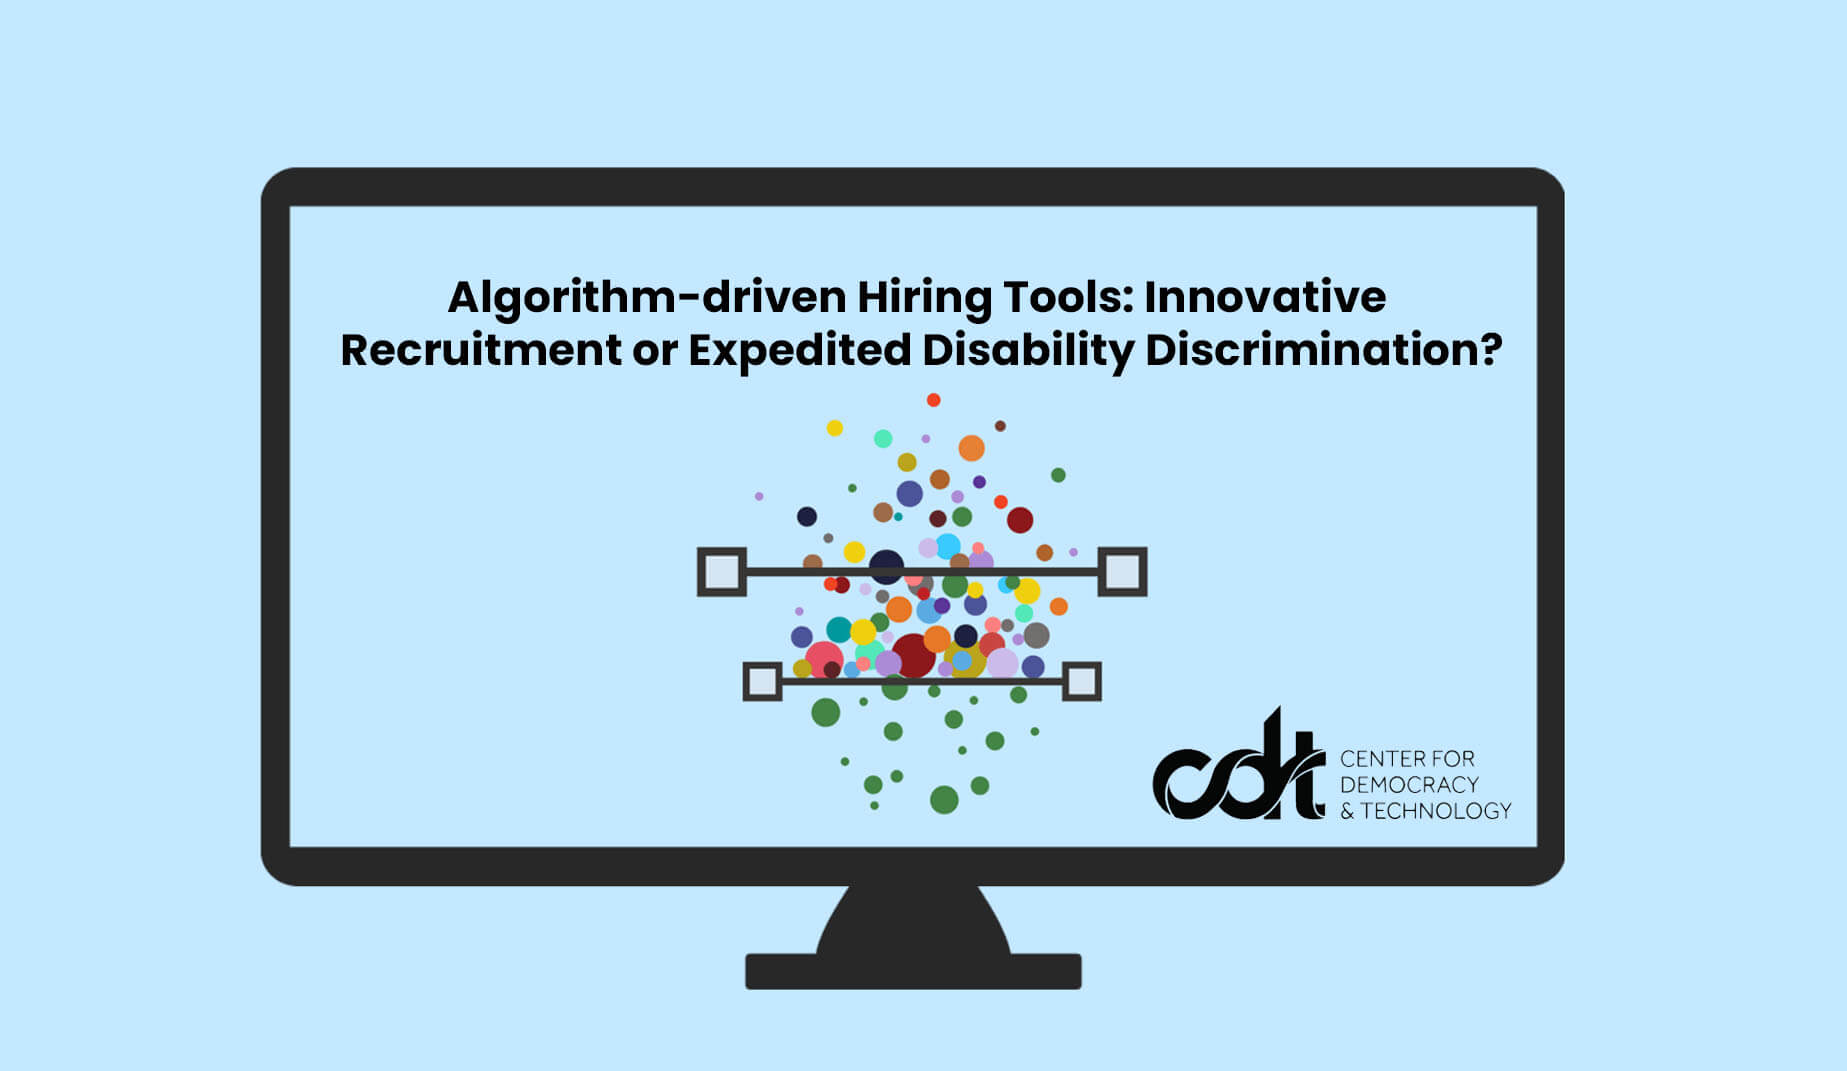 Hiring Tools: Innovative or Disability Discrimination?